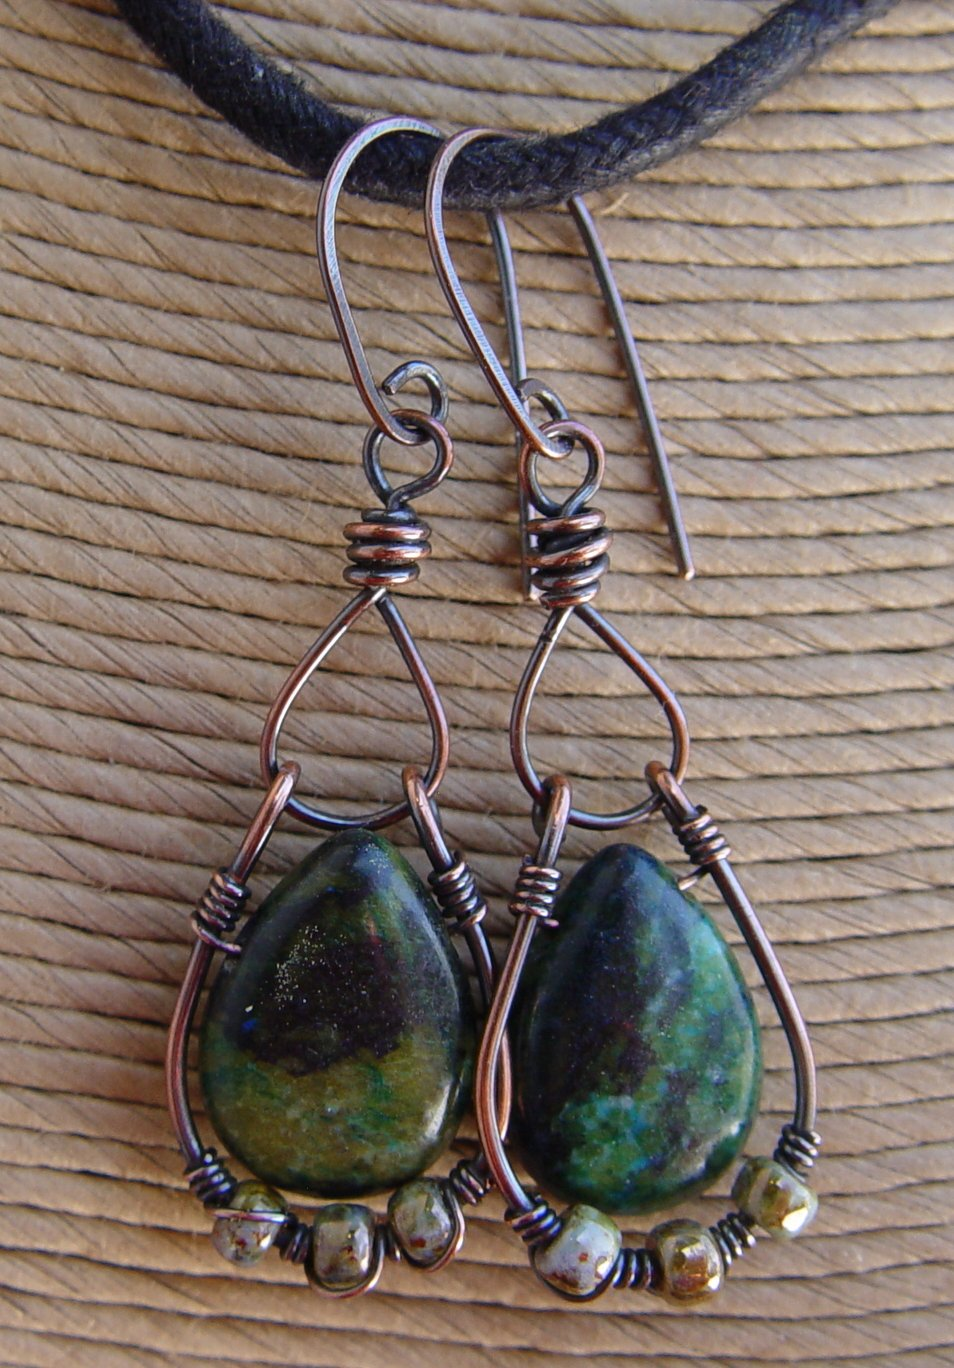 Jean A Wells Handcrafted Artisan Jewelry Necklace